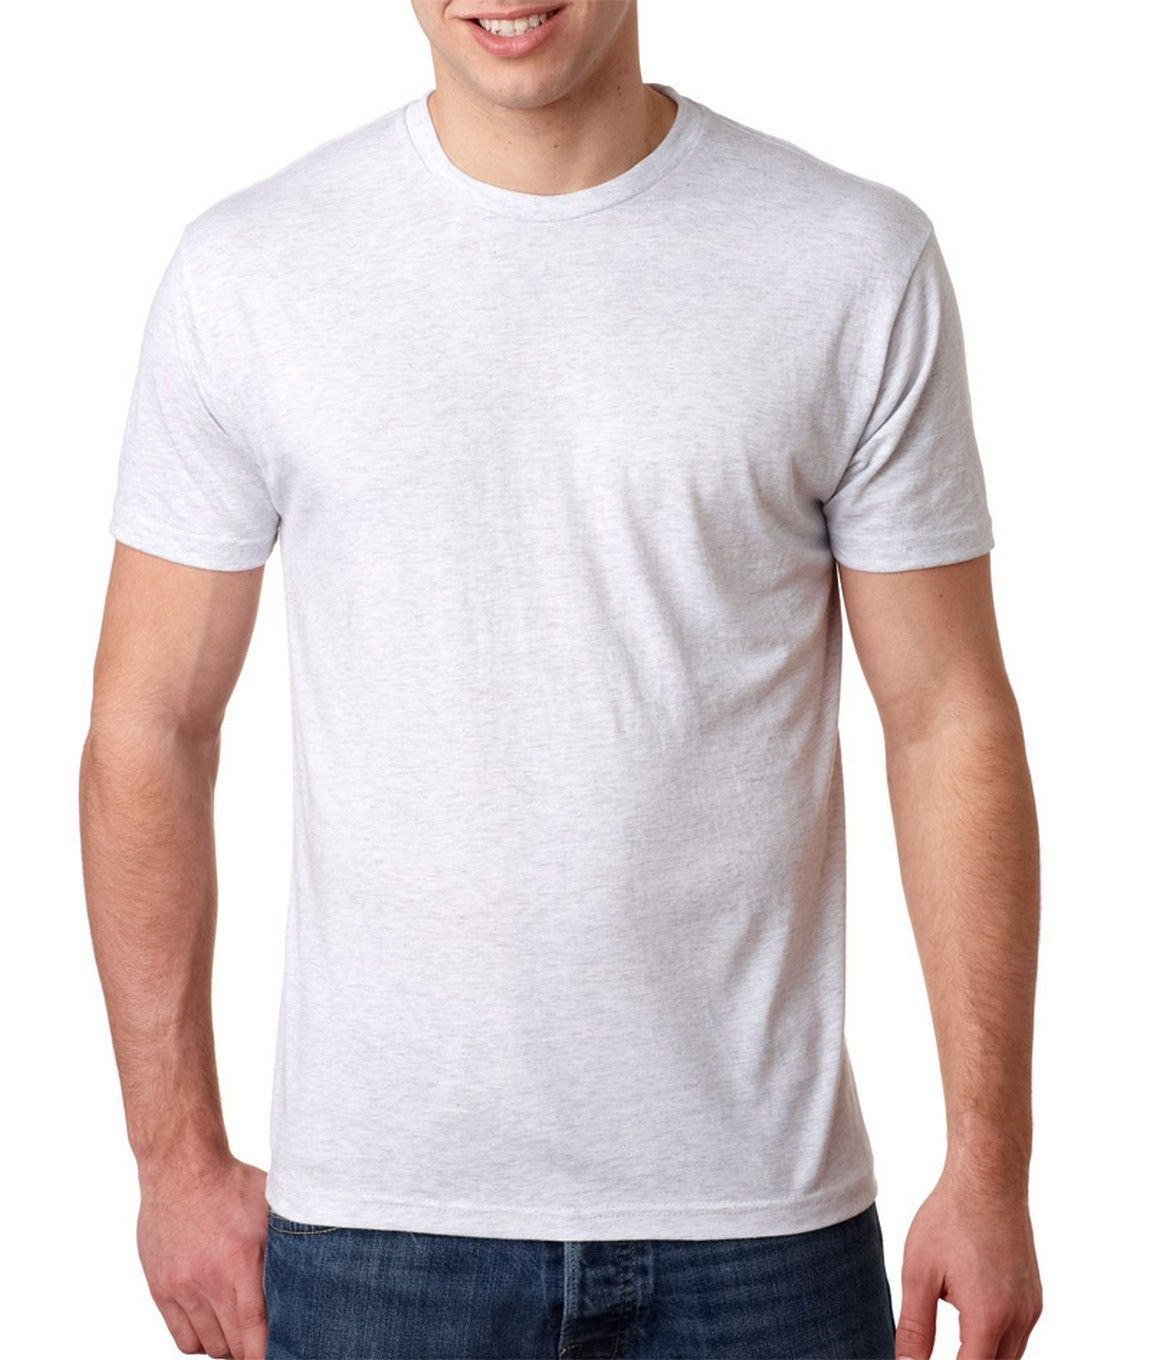 T shirt white blank - Find This Pin And More On T Shirts